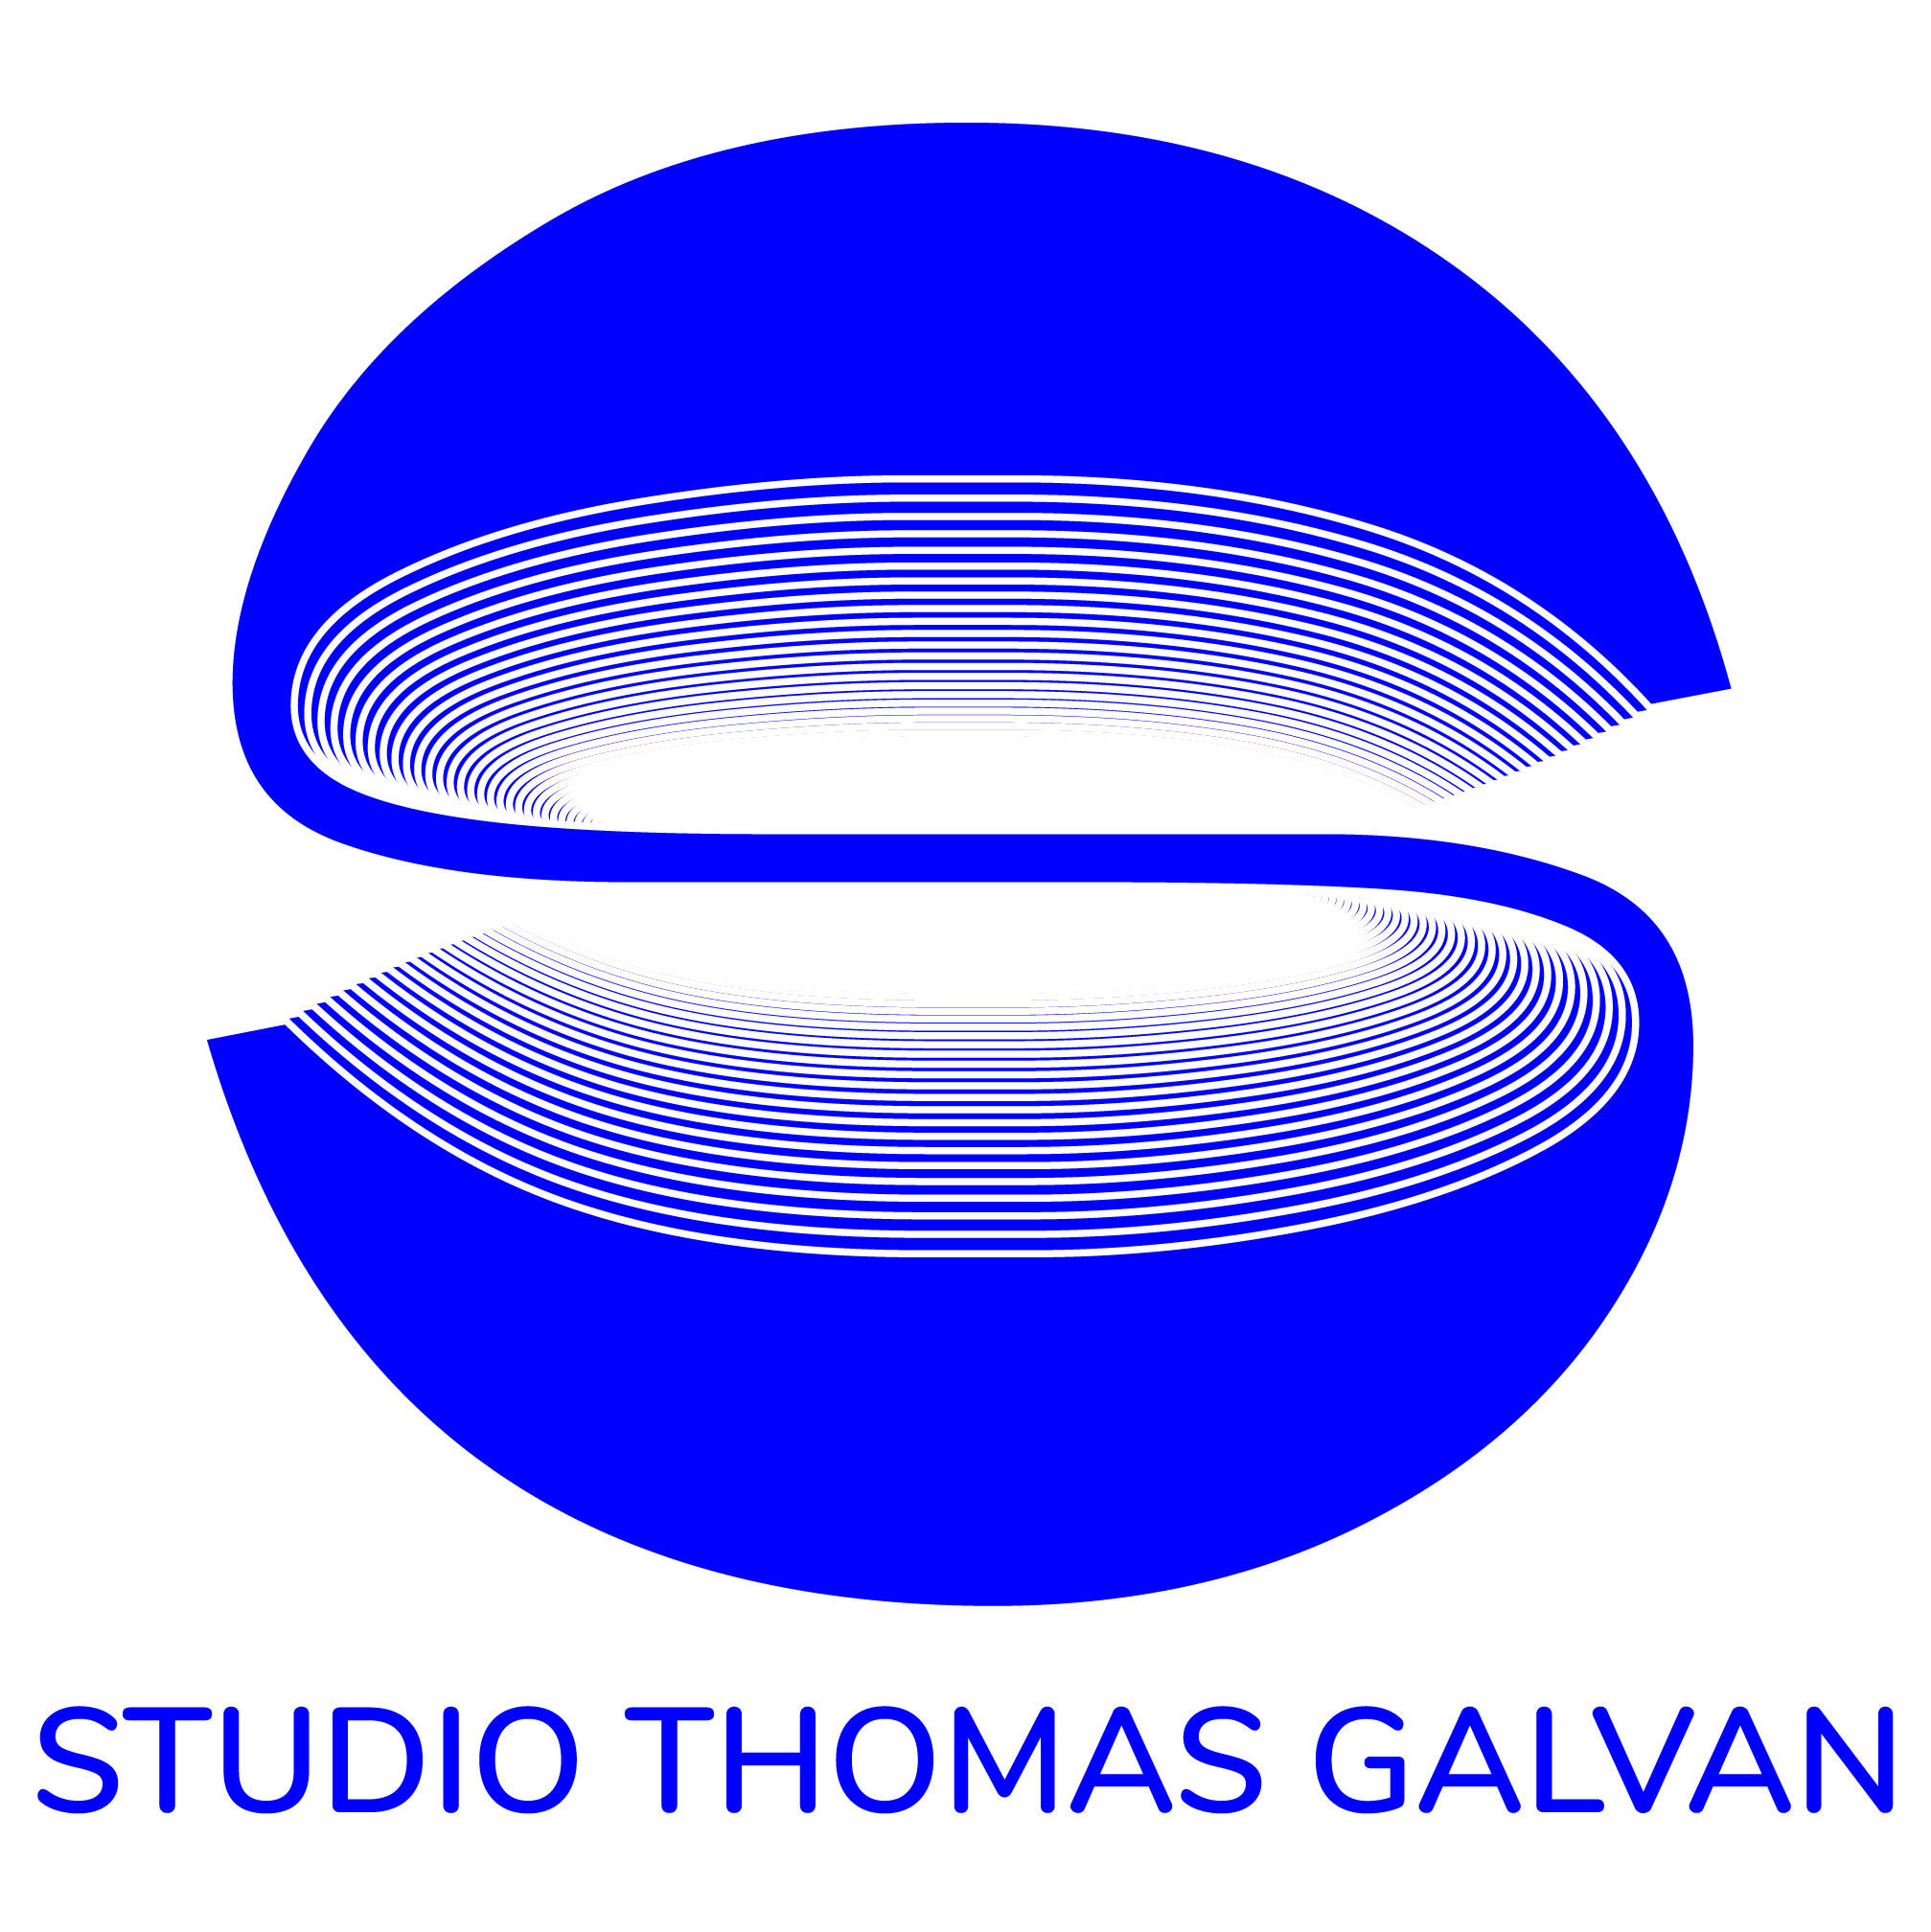 STUDIO THOMAS GALVAN